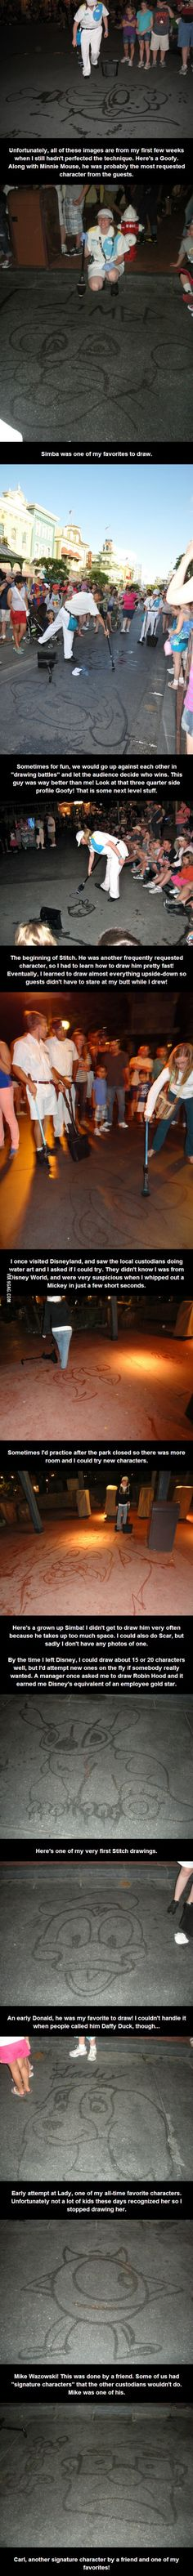 As a janitor at Disney World, she drew characters with water and a broom on the sidewalk to entertain guests.